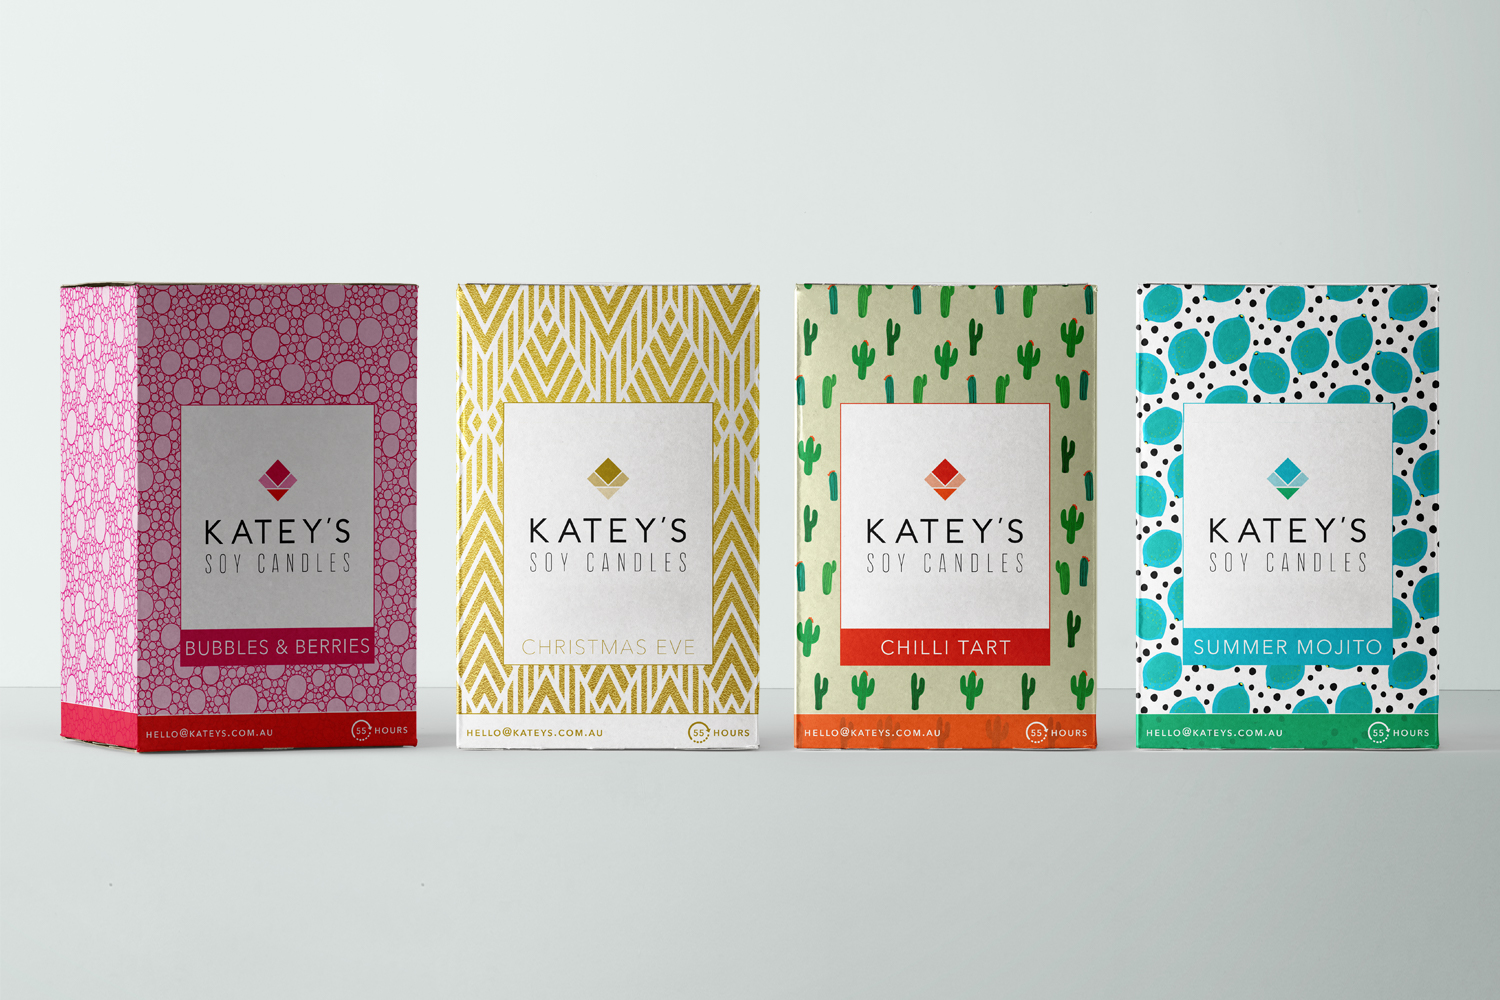 Katey's Soy Candles logo design and packaging